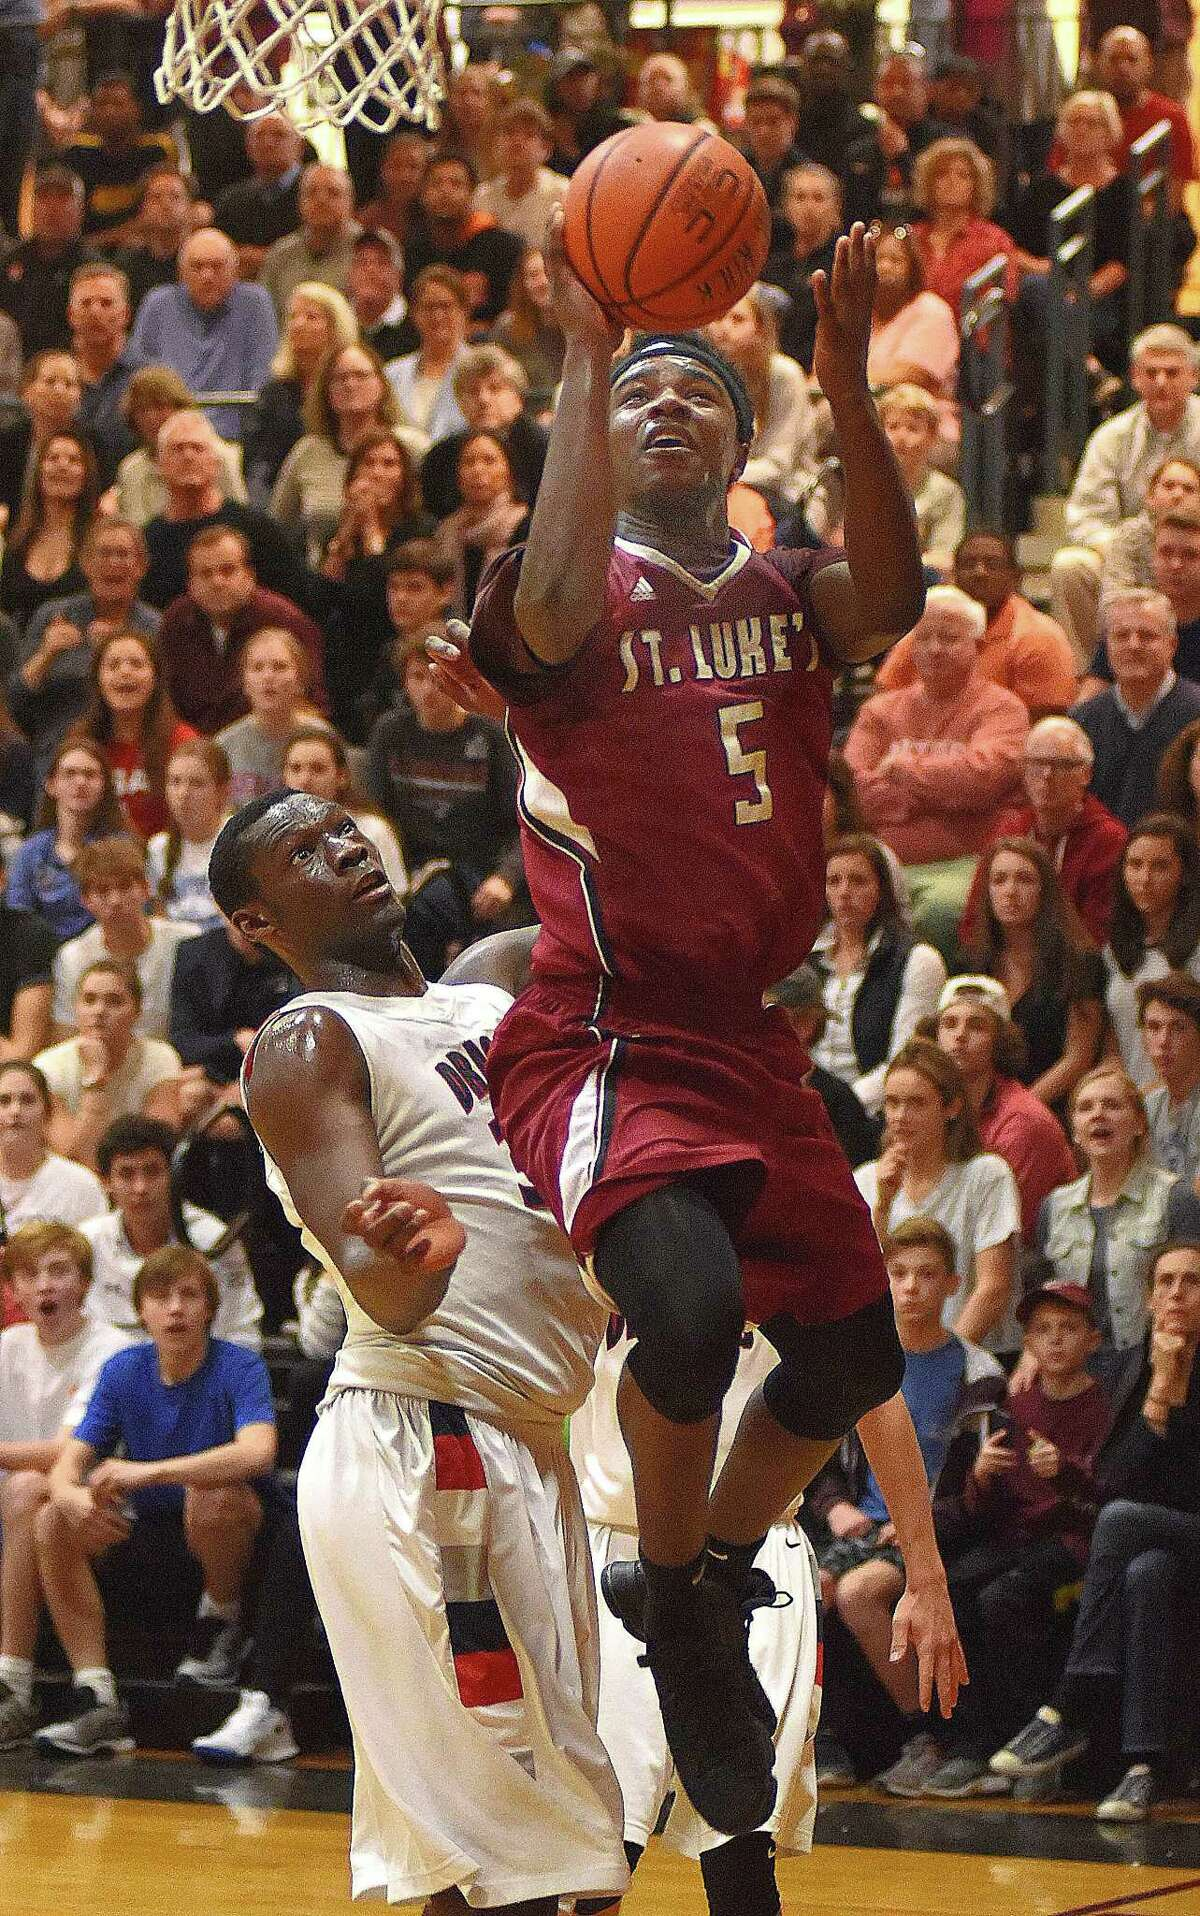 St. Luke's Jonas Harper, right, puts up a runner as he challenges Greens Farms Academy's Sunday Okeke during the first half of Saturday's FAA boys basketball championship at Carey Gym in New Canaan. St. Luke's won the game, 71-69.